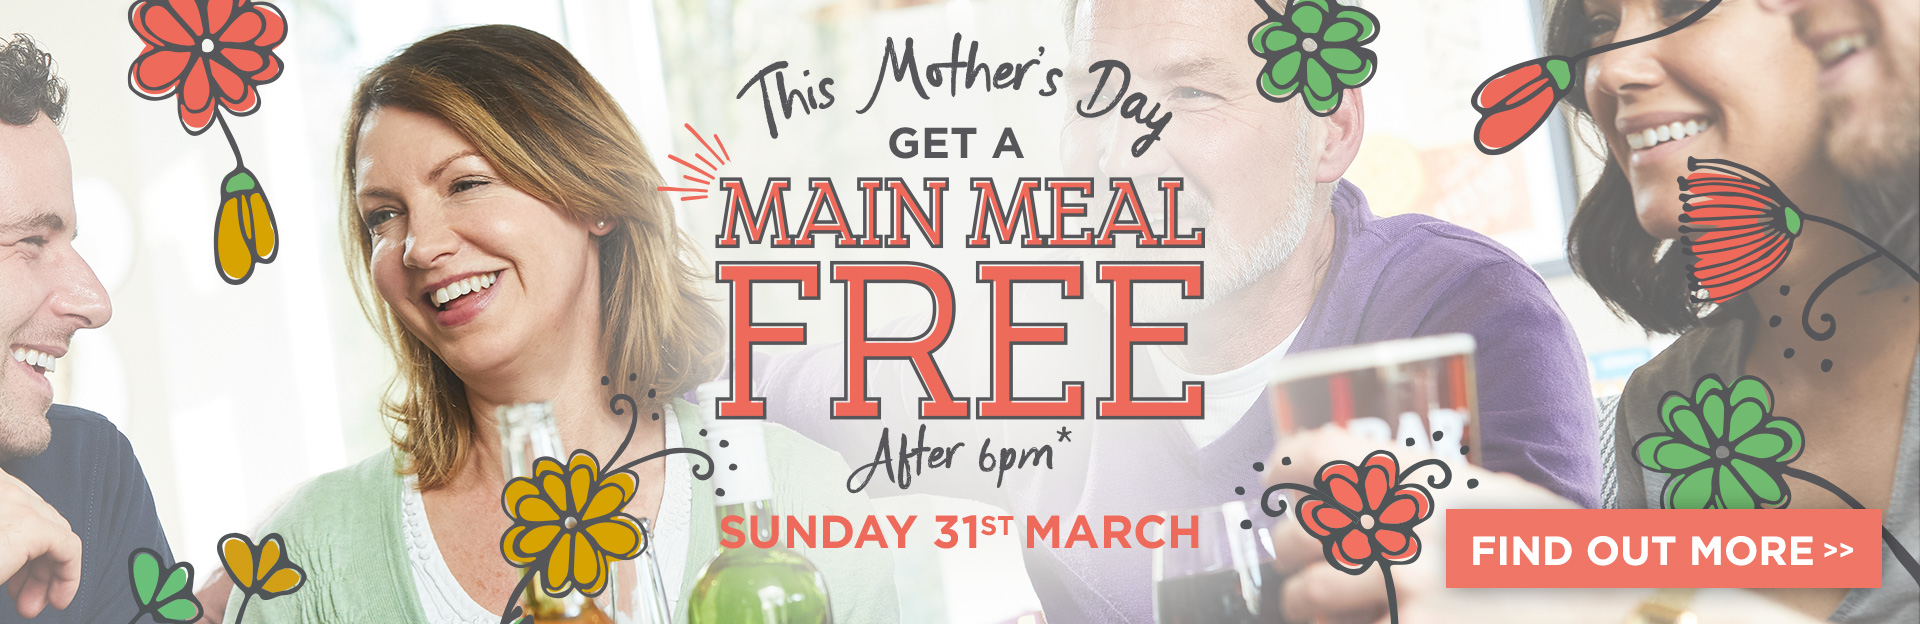 Mother's Day at The Masons Arms